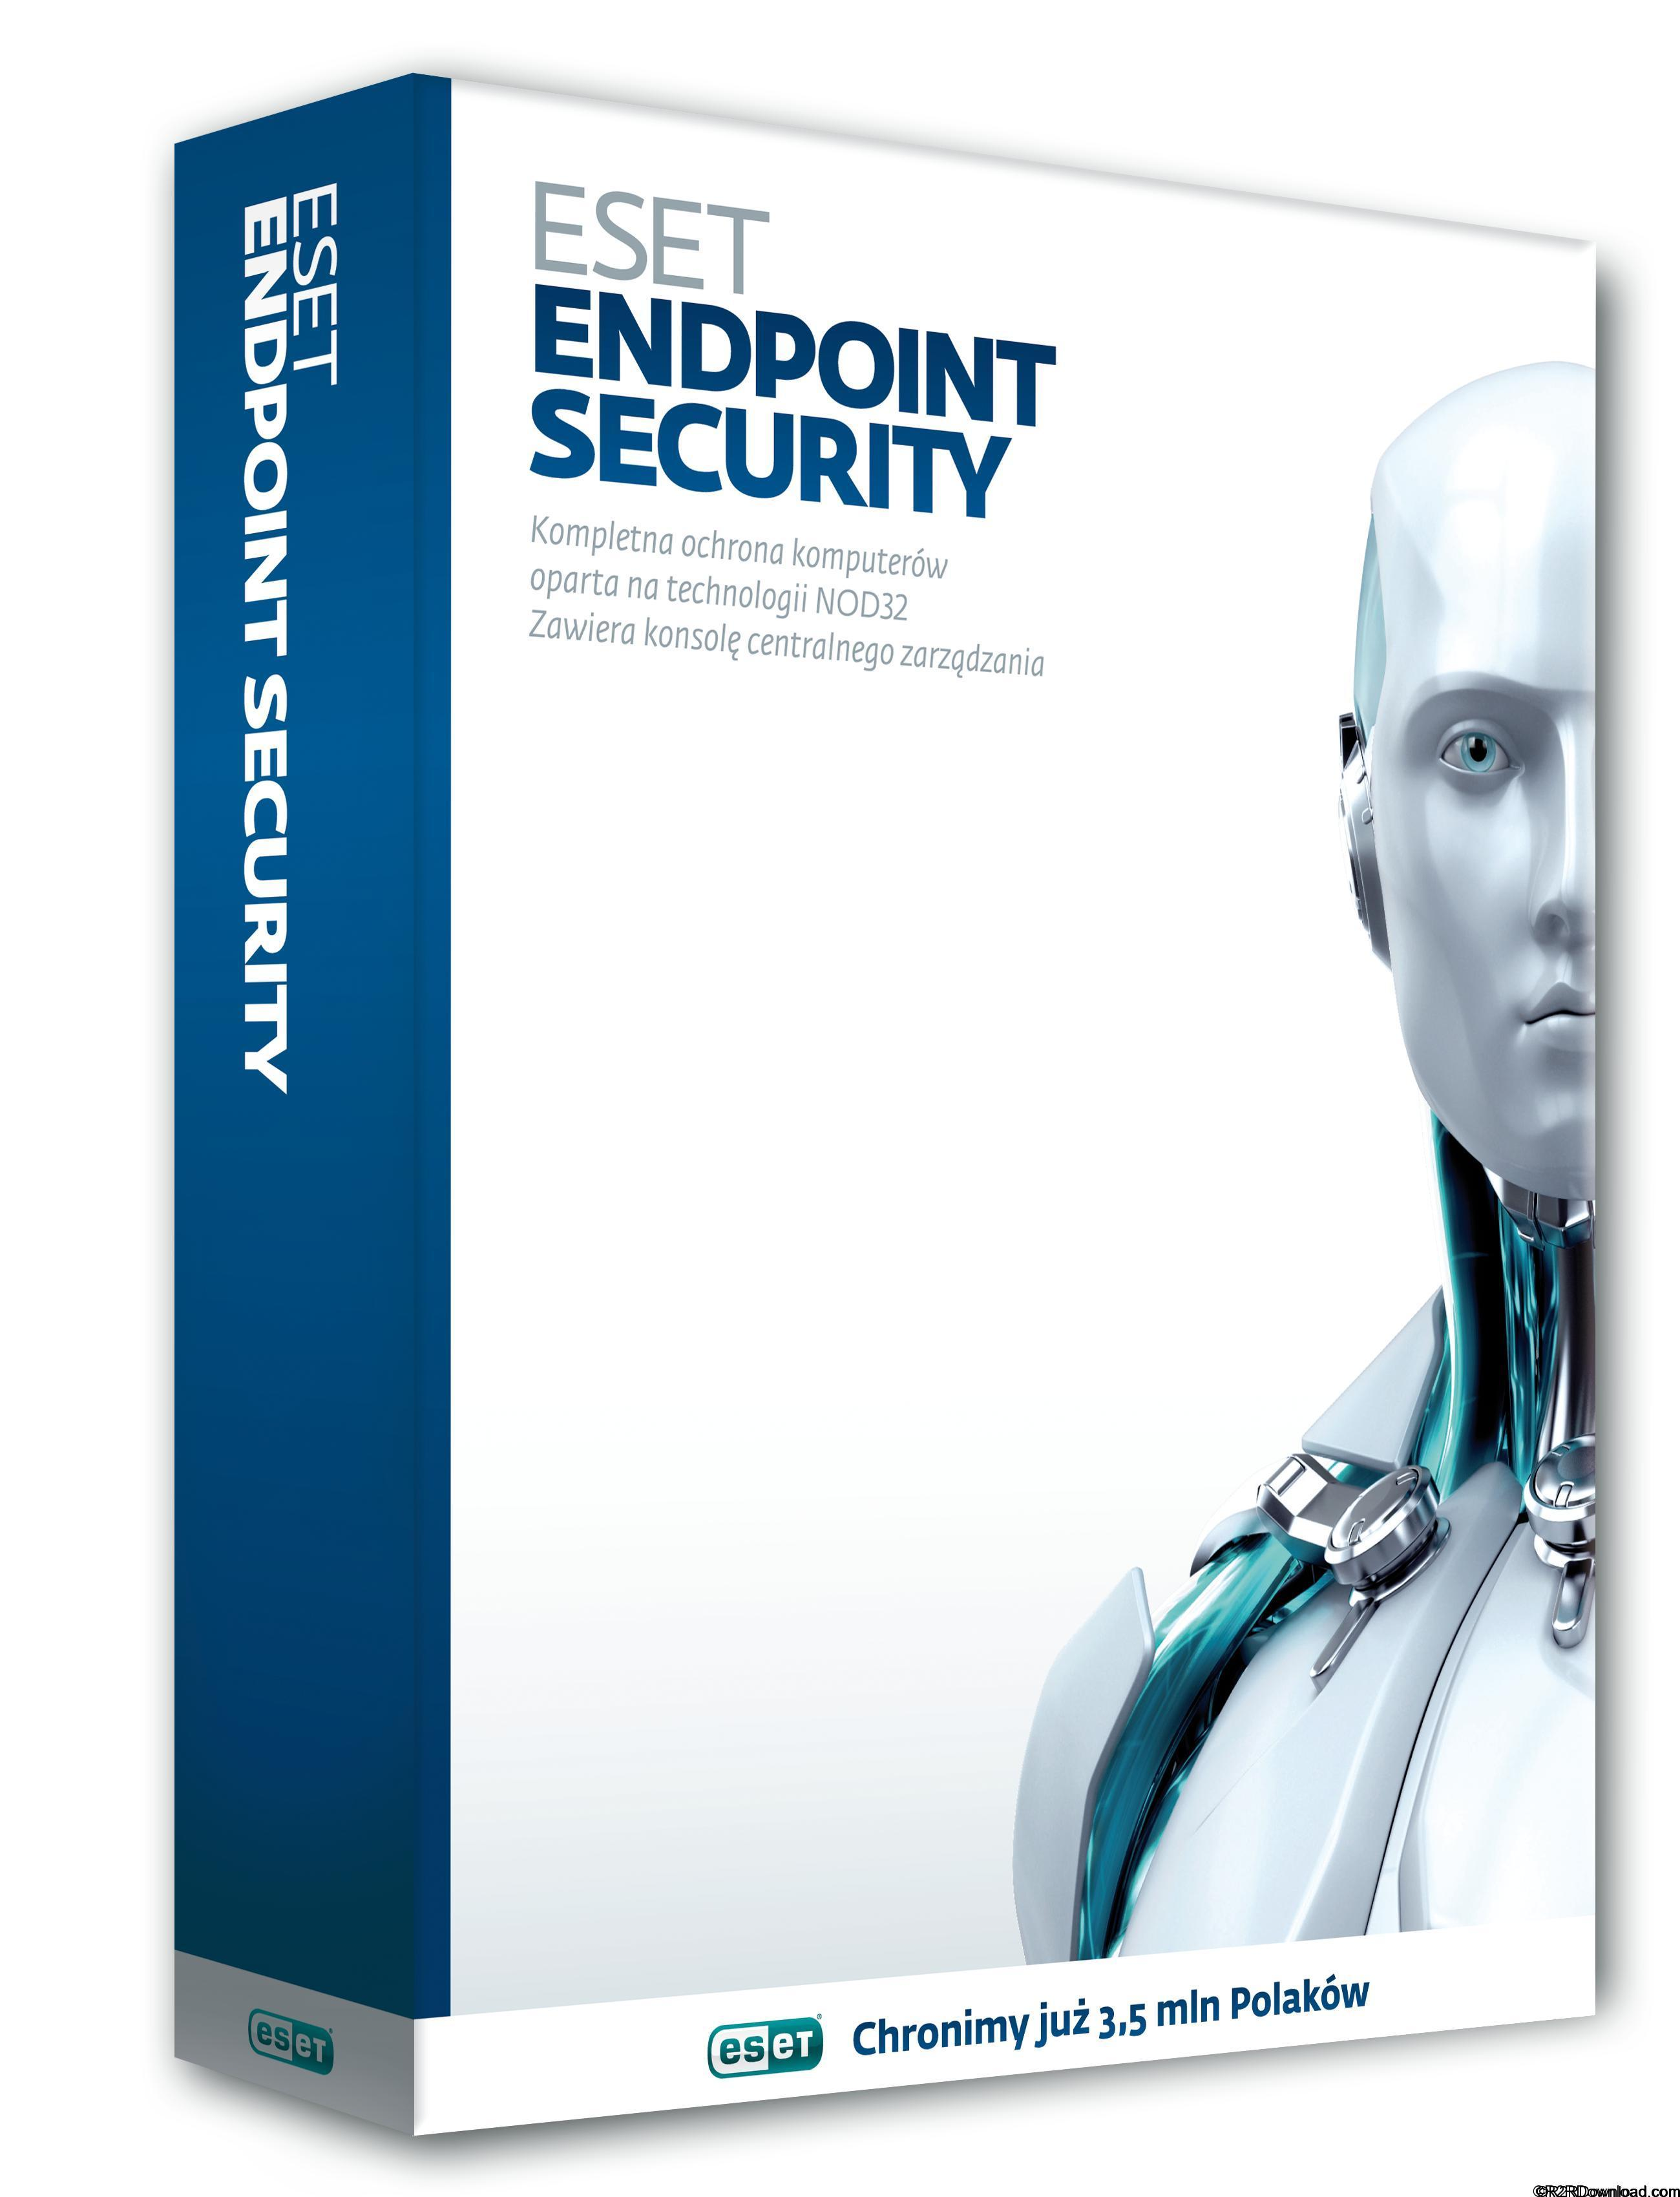 ESET Endpoint Security 6.5 Free Download